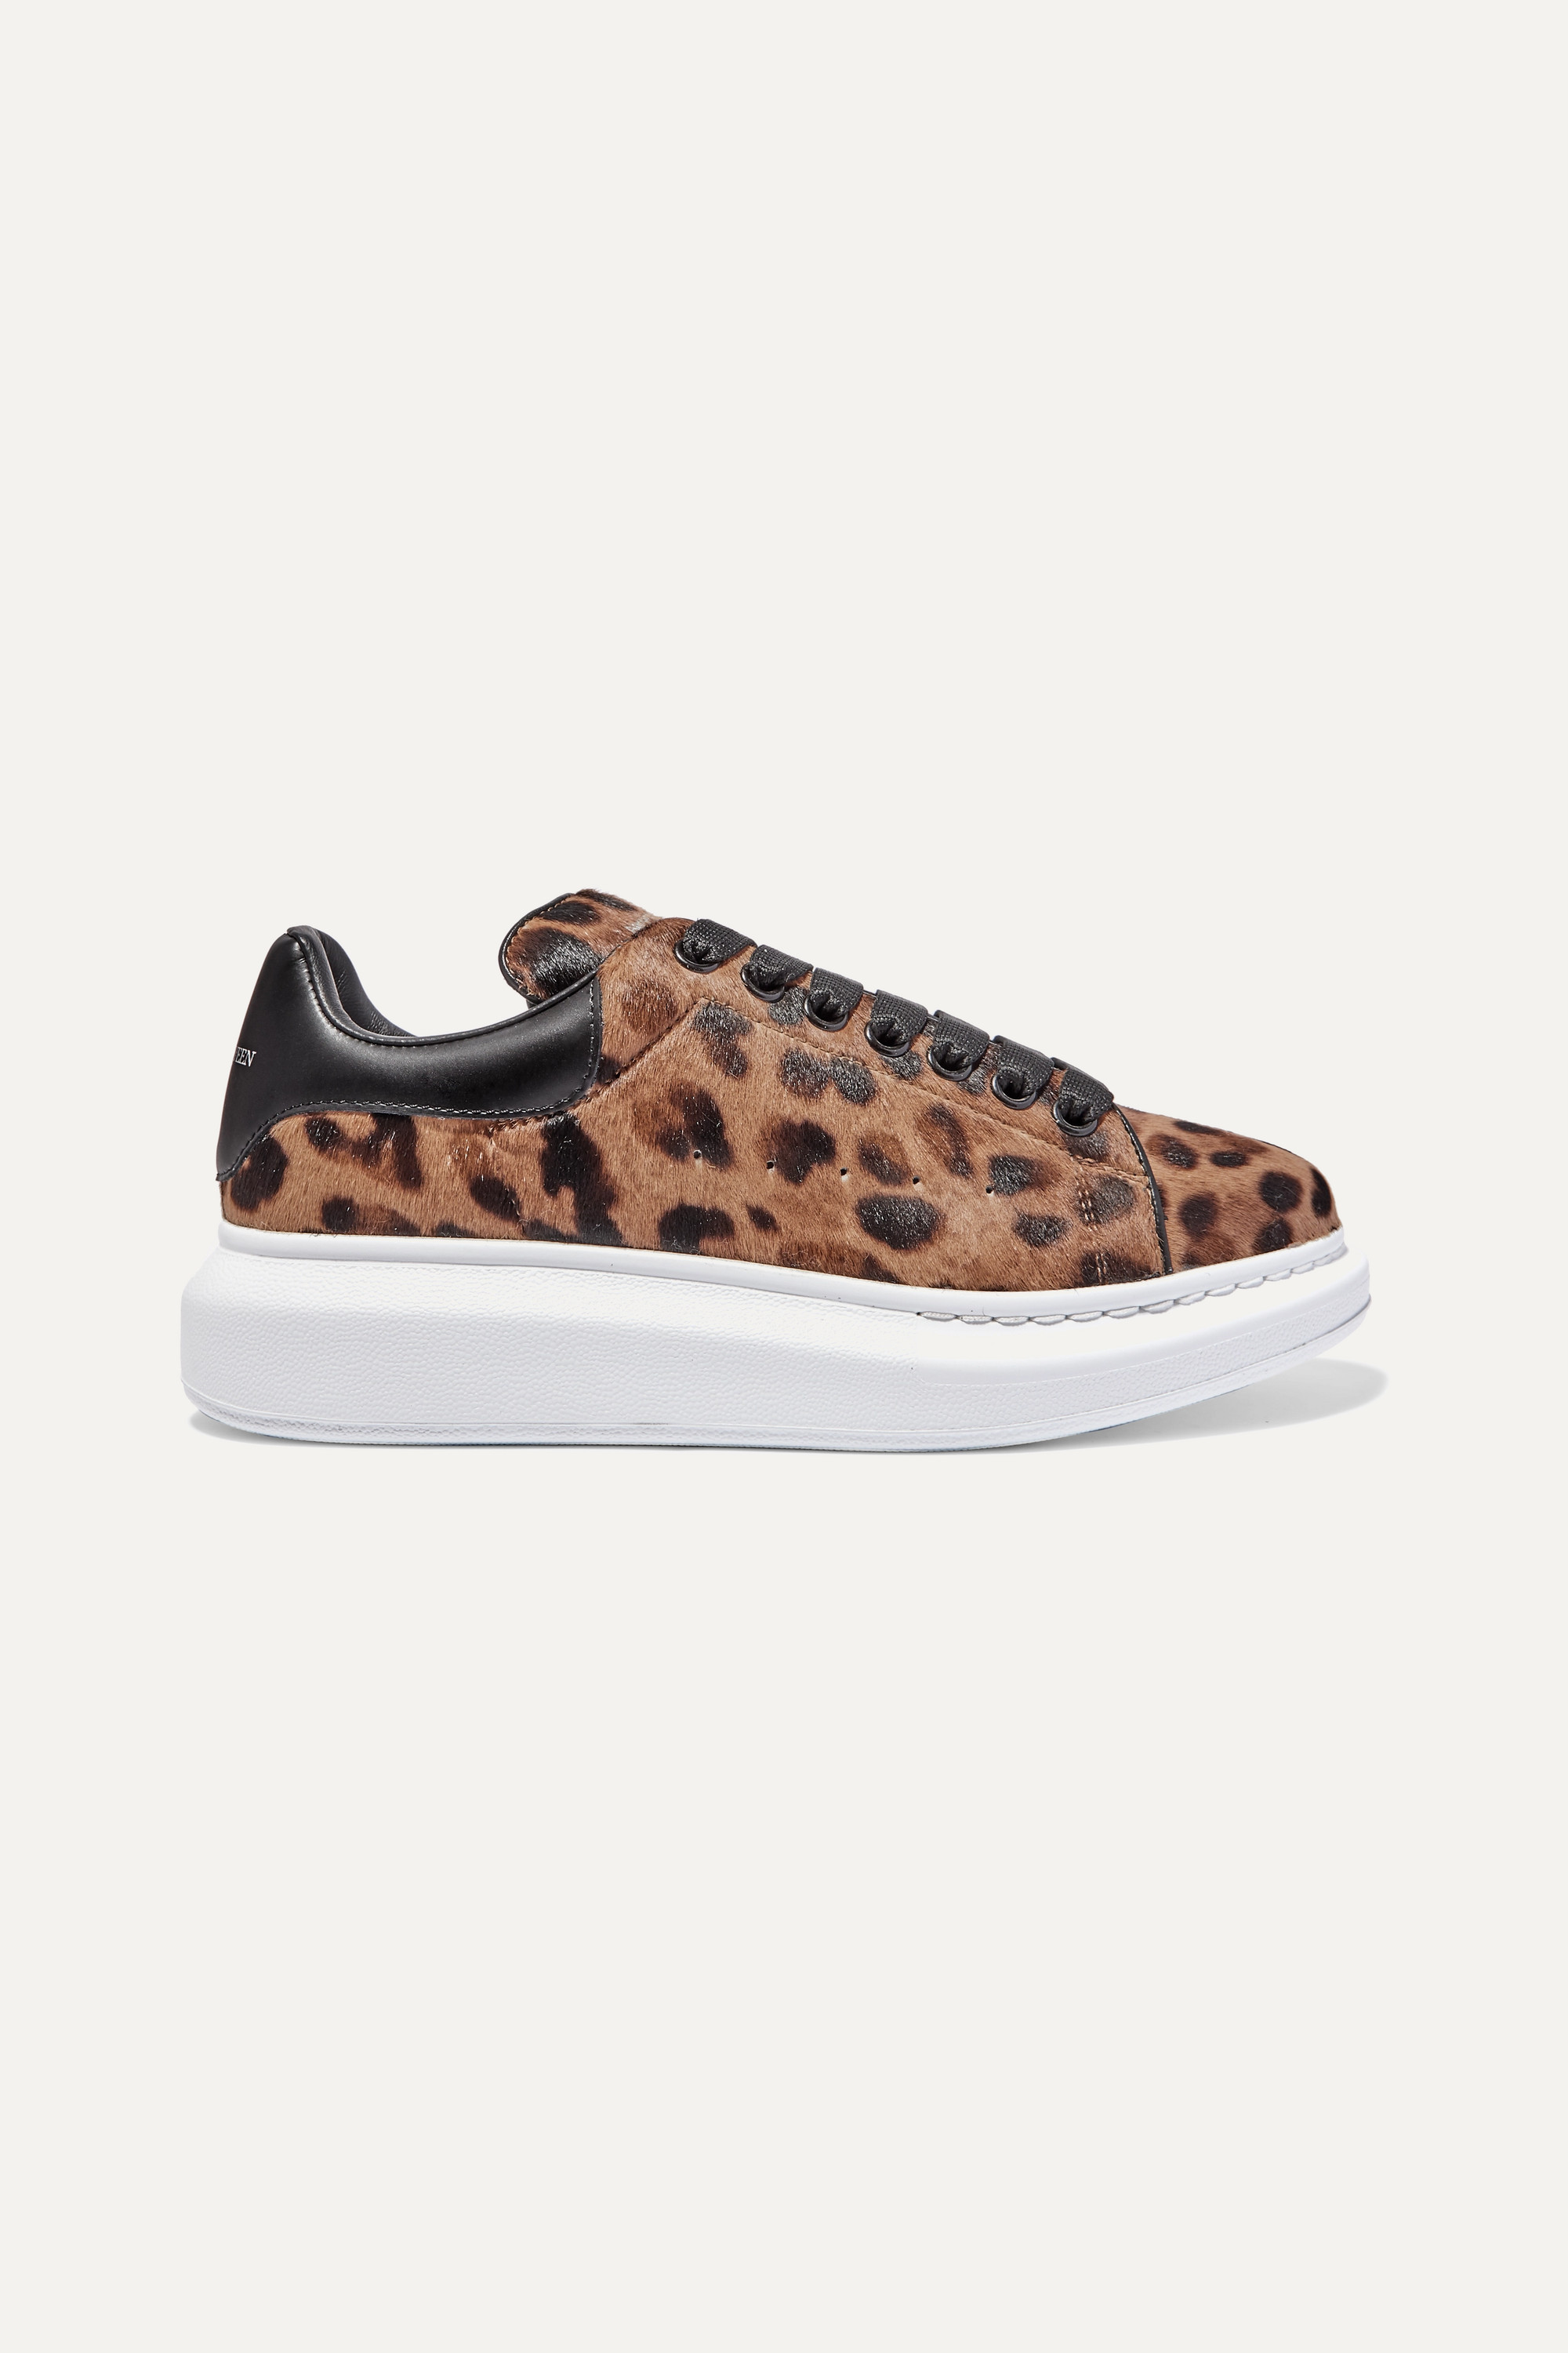 Alexander McQueen Leopard-print calf hair and leather sneakers